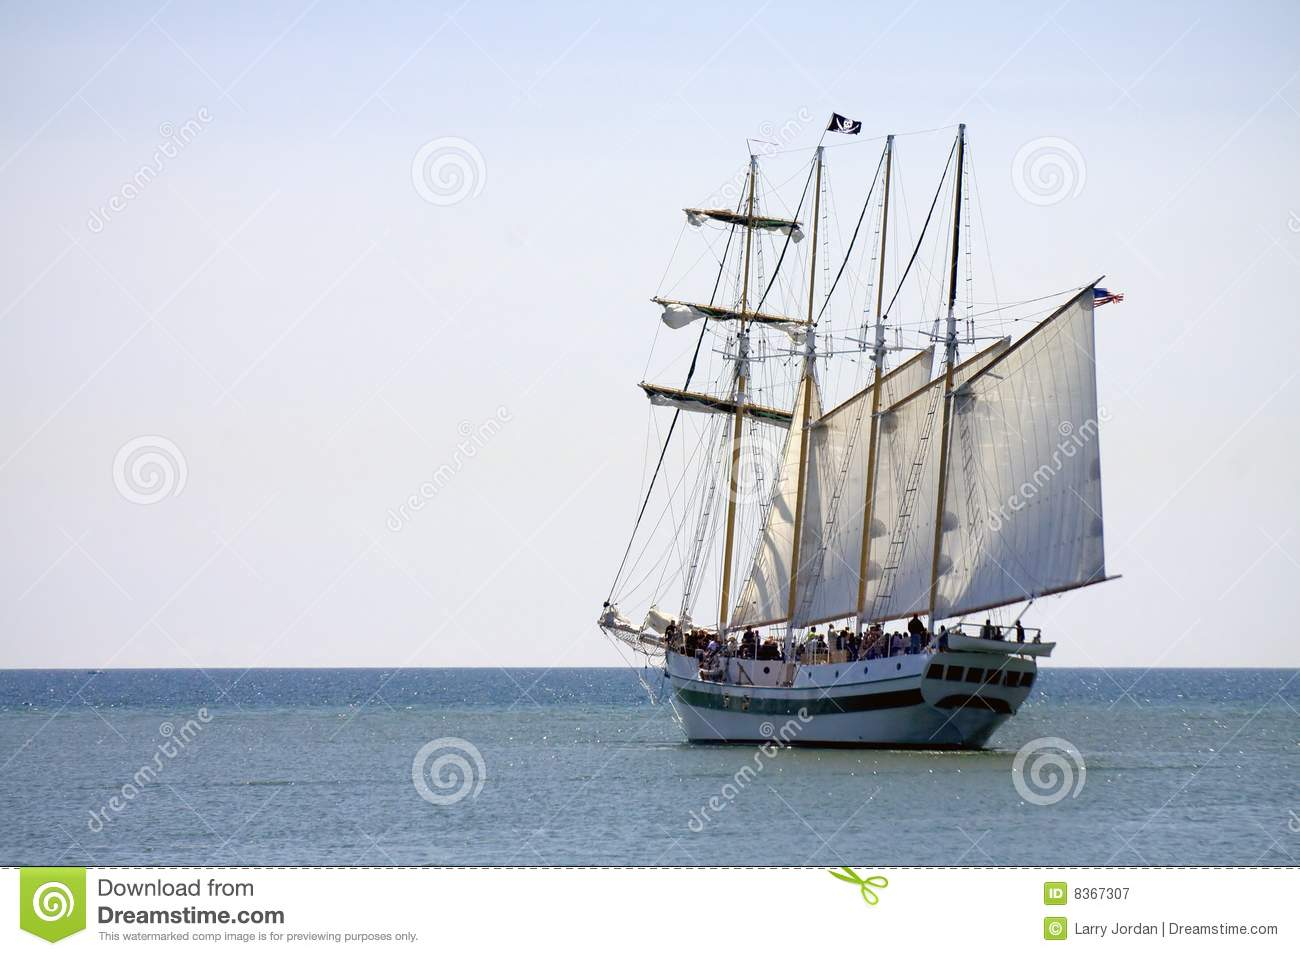 Four Mast Tall Pirate Ship Royalty Free Stock Photography.